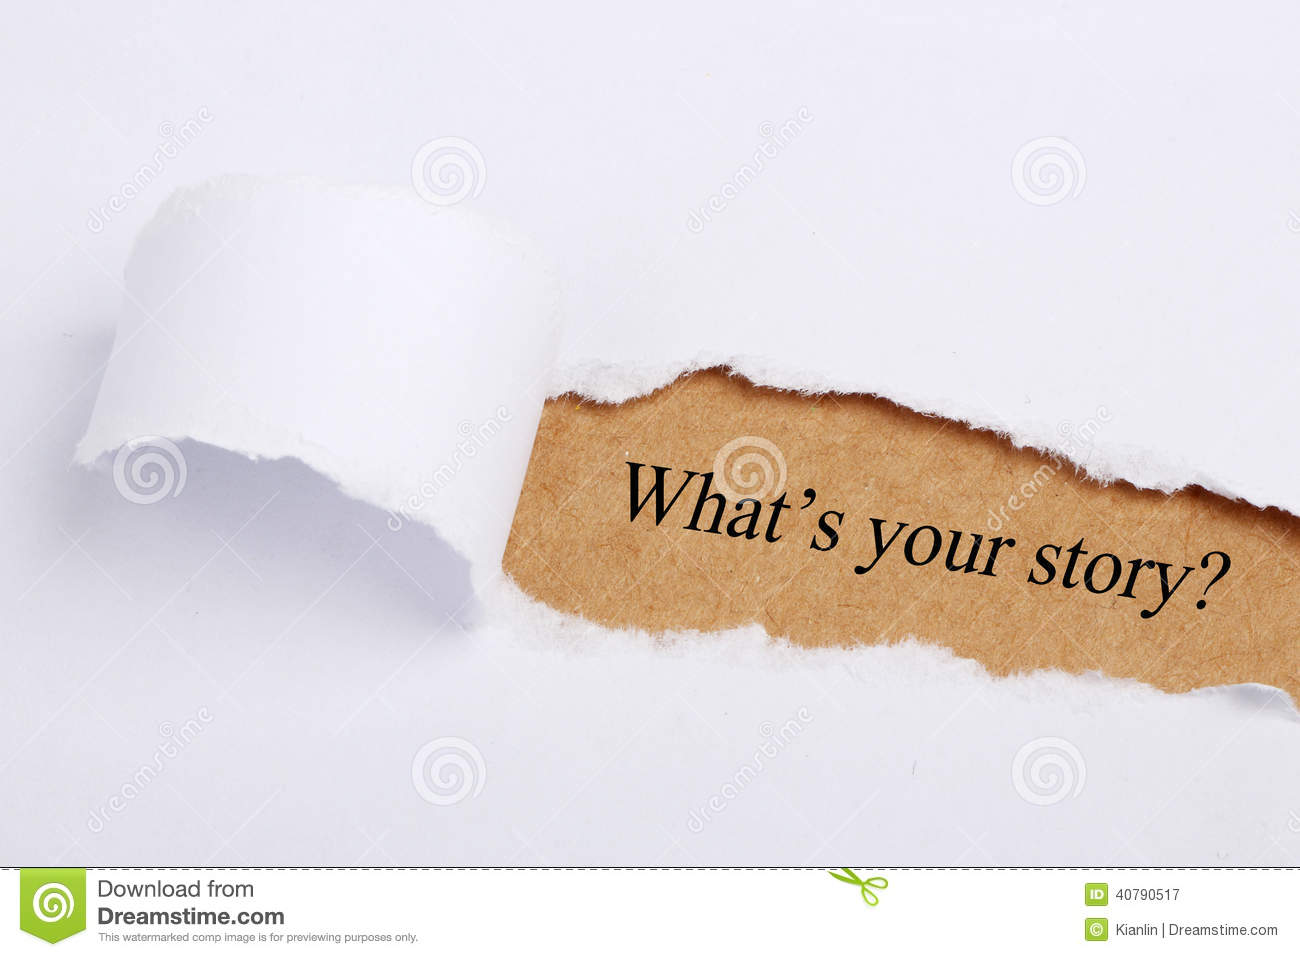 What s your story?